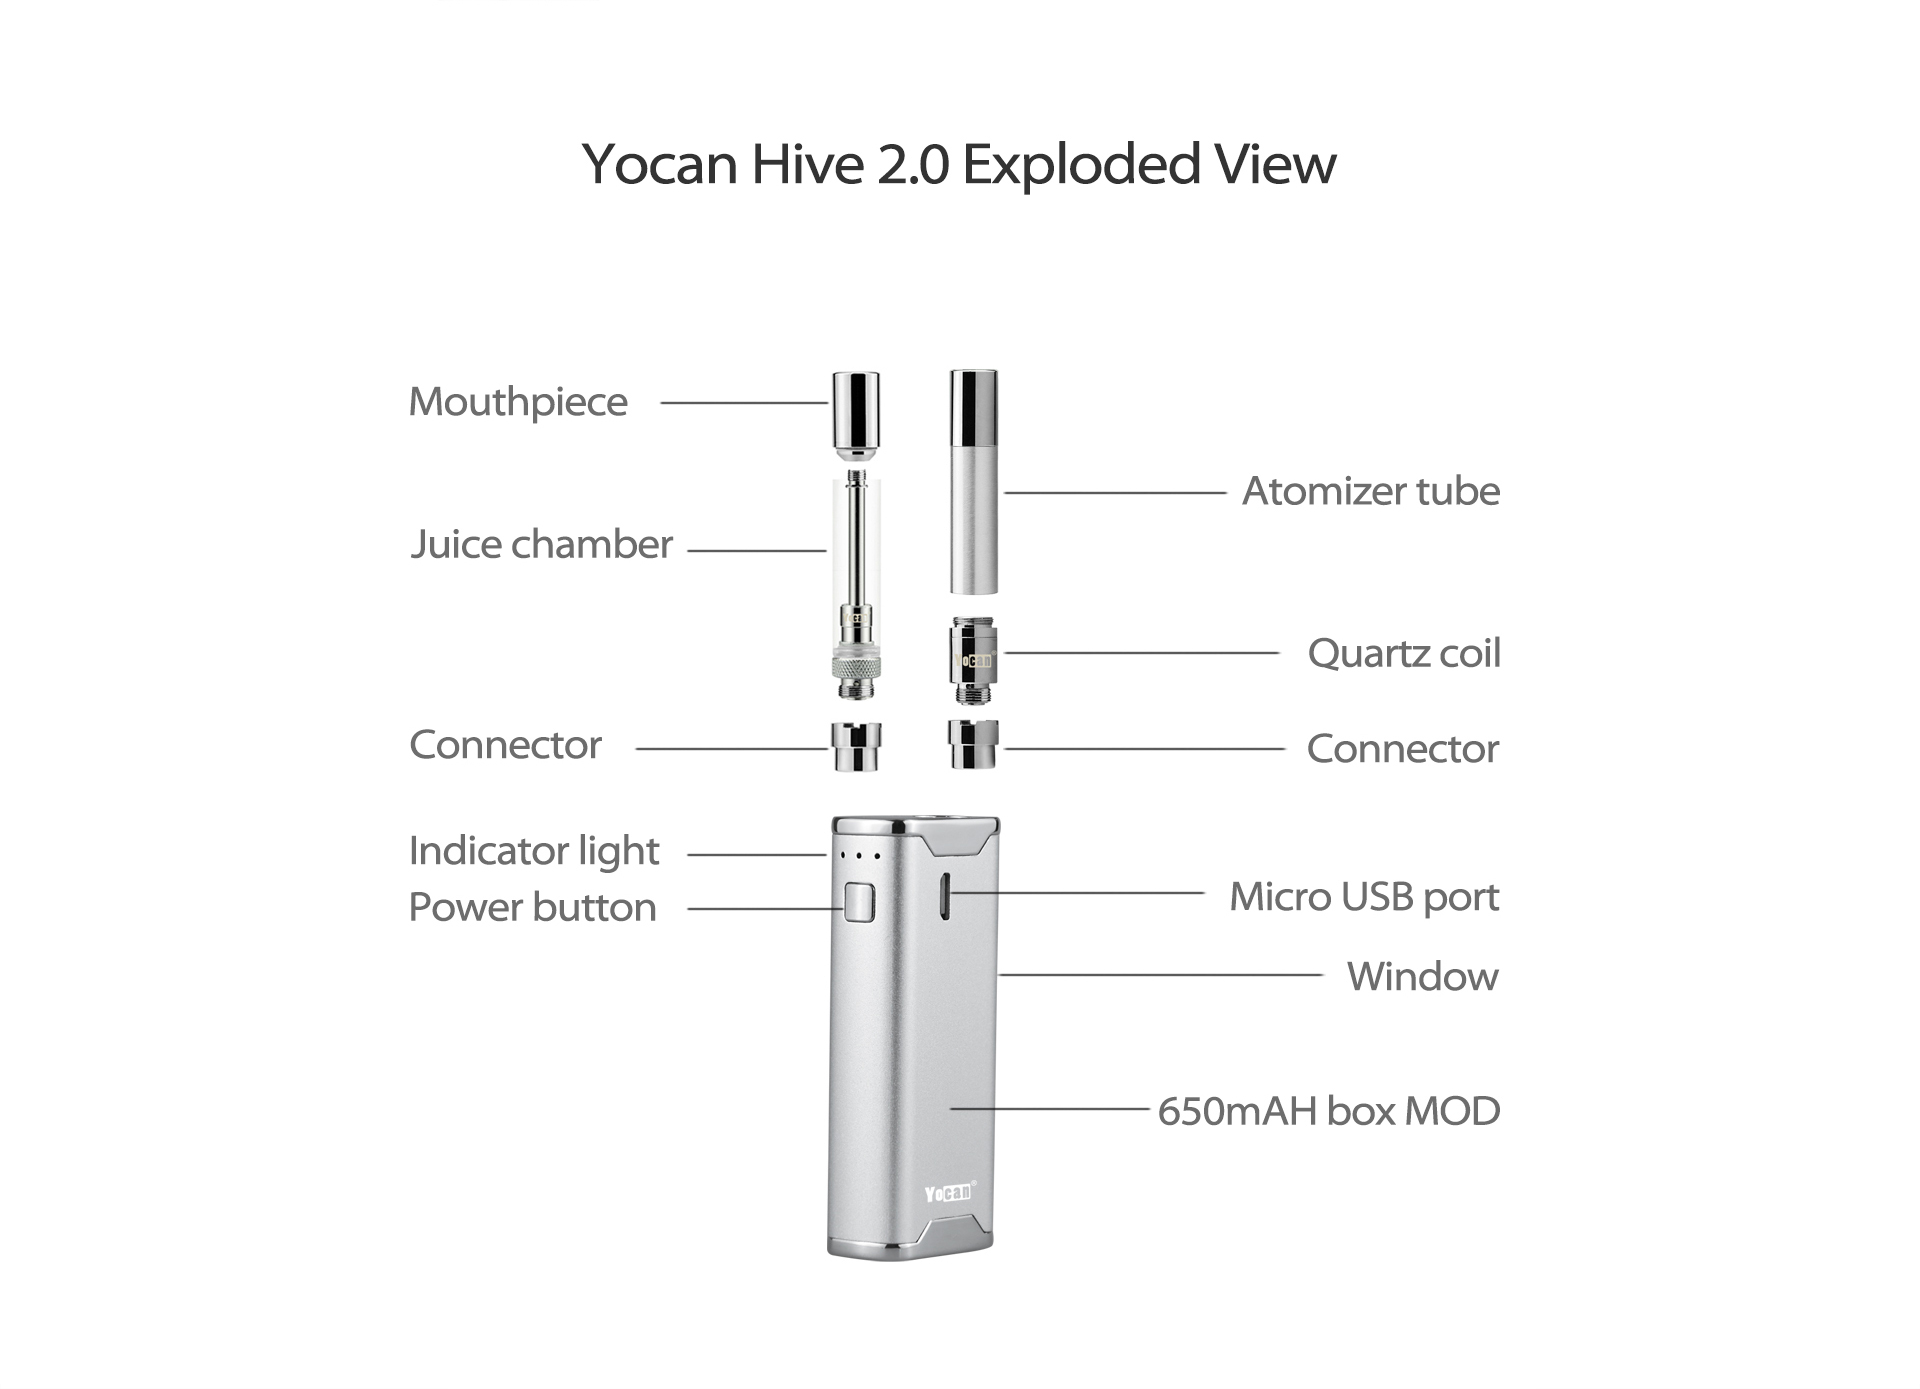 Yocan Hive 2.0 is an All-in-one Vape Kit exploded view.